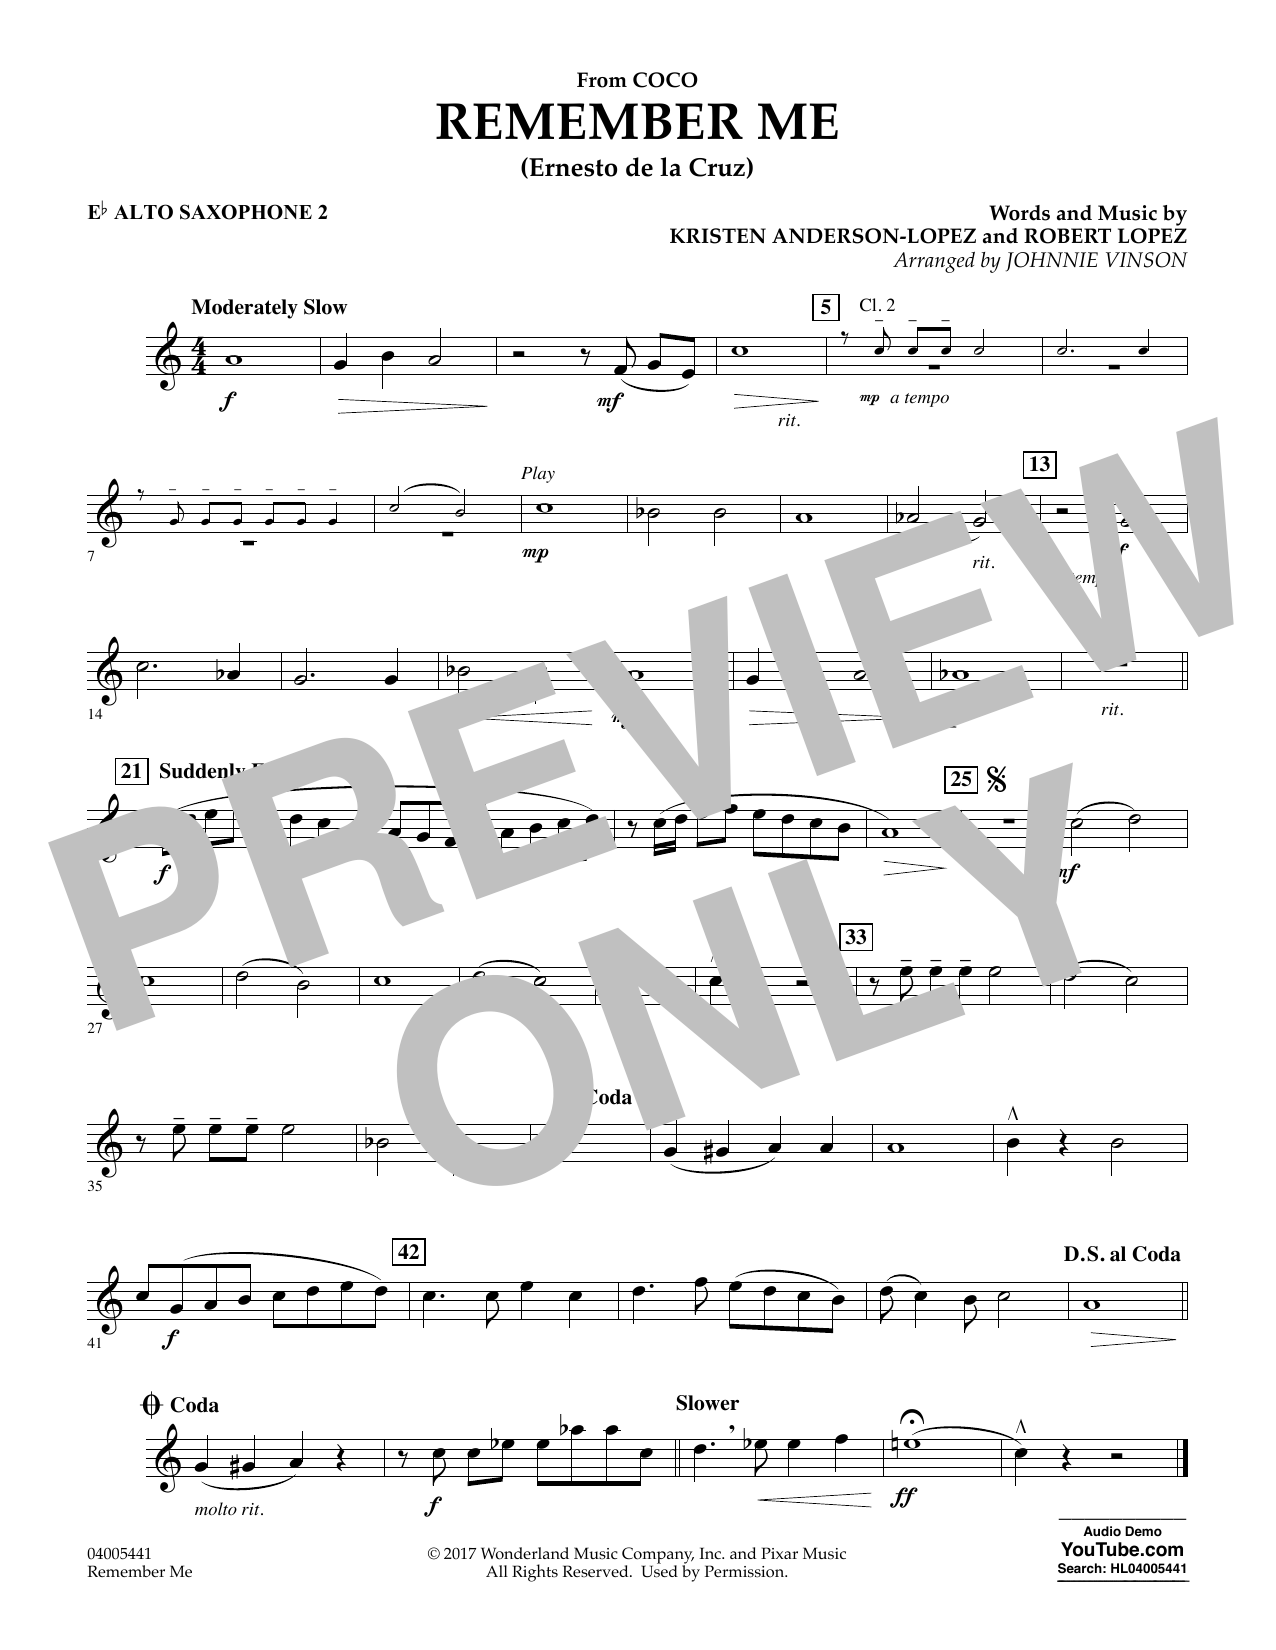 Kristen Anderson-Lopez & Robert Lopez Remember Me (from Coco) (arr. Johnnie Vinson) - Eb Alto Saxophone 2 sheet music notes and chords. Download Printable PDF.